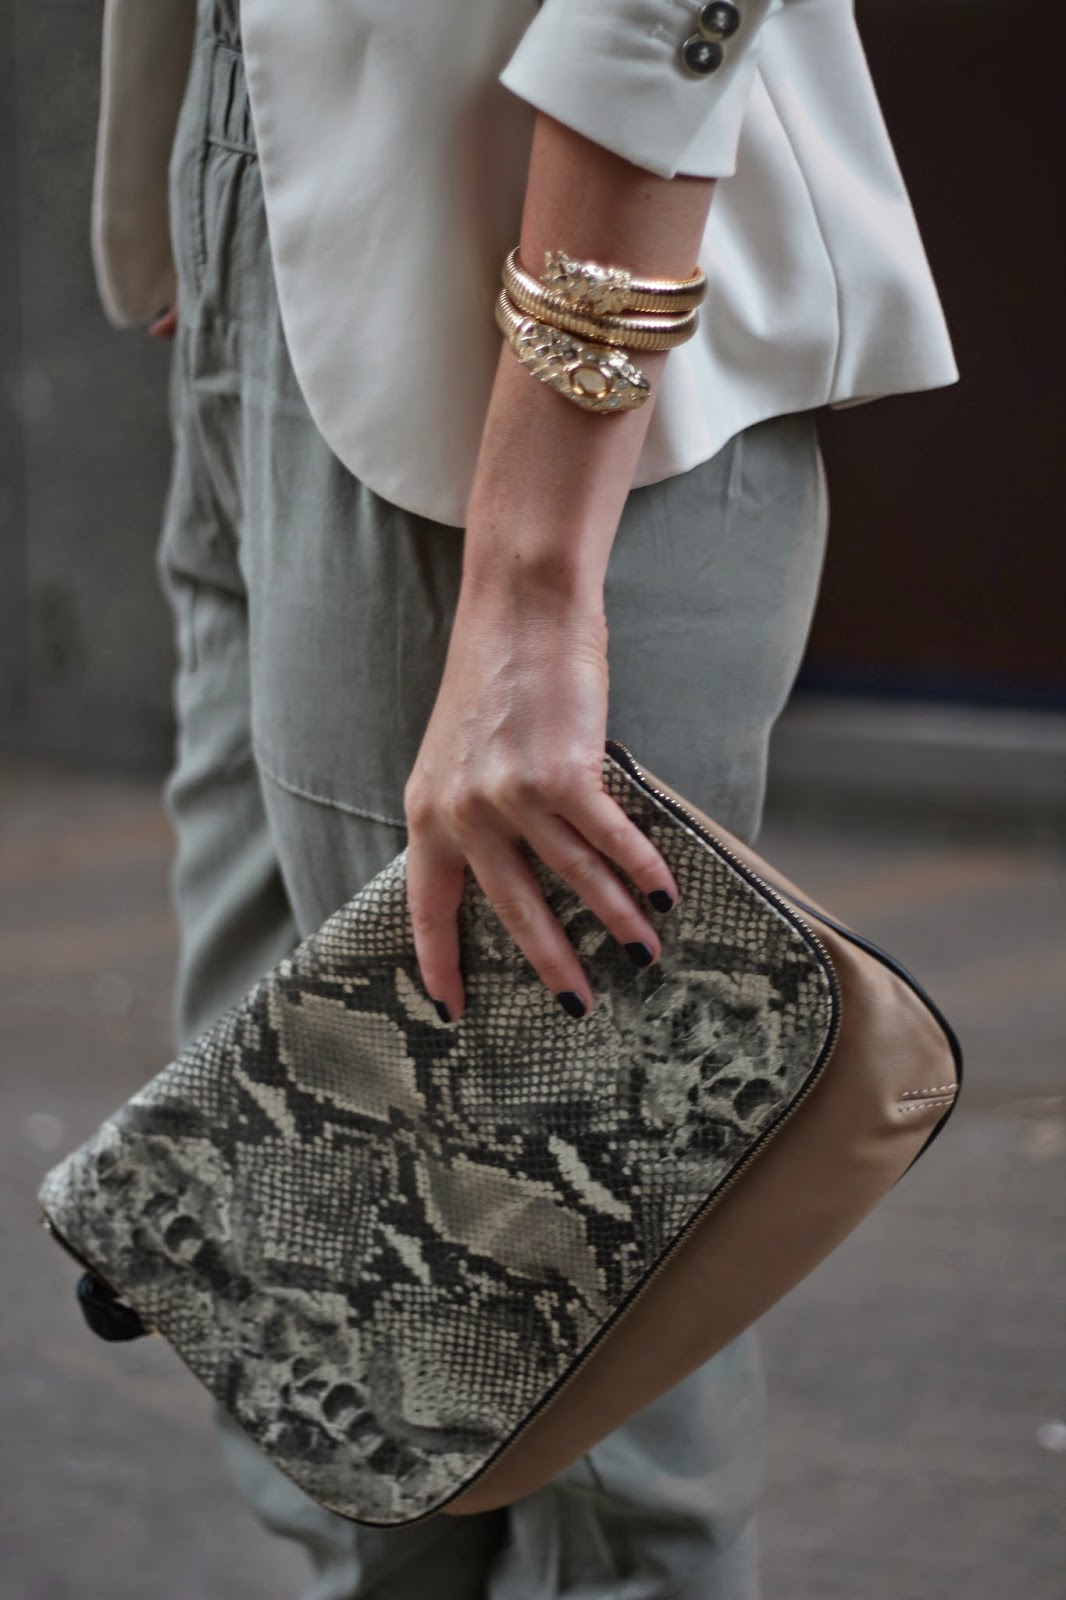 anna dello russo for H&M, snake bracelet, chanel blue satin, zara clutch, zara bag, snake printn clutch